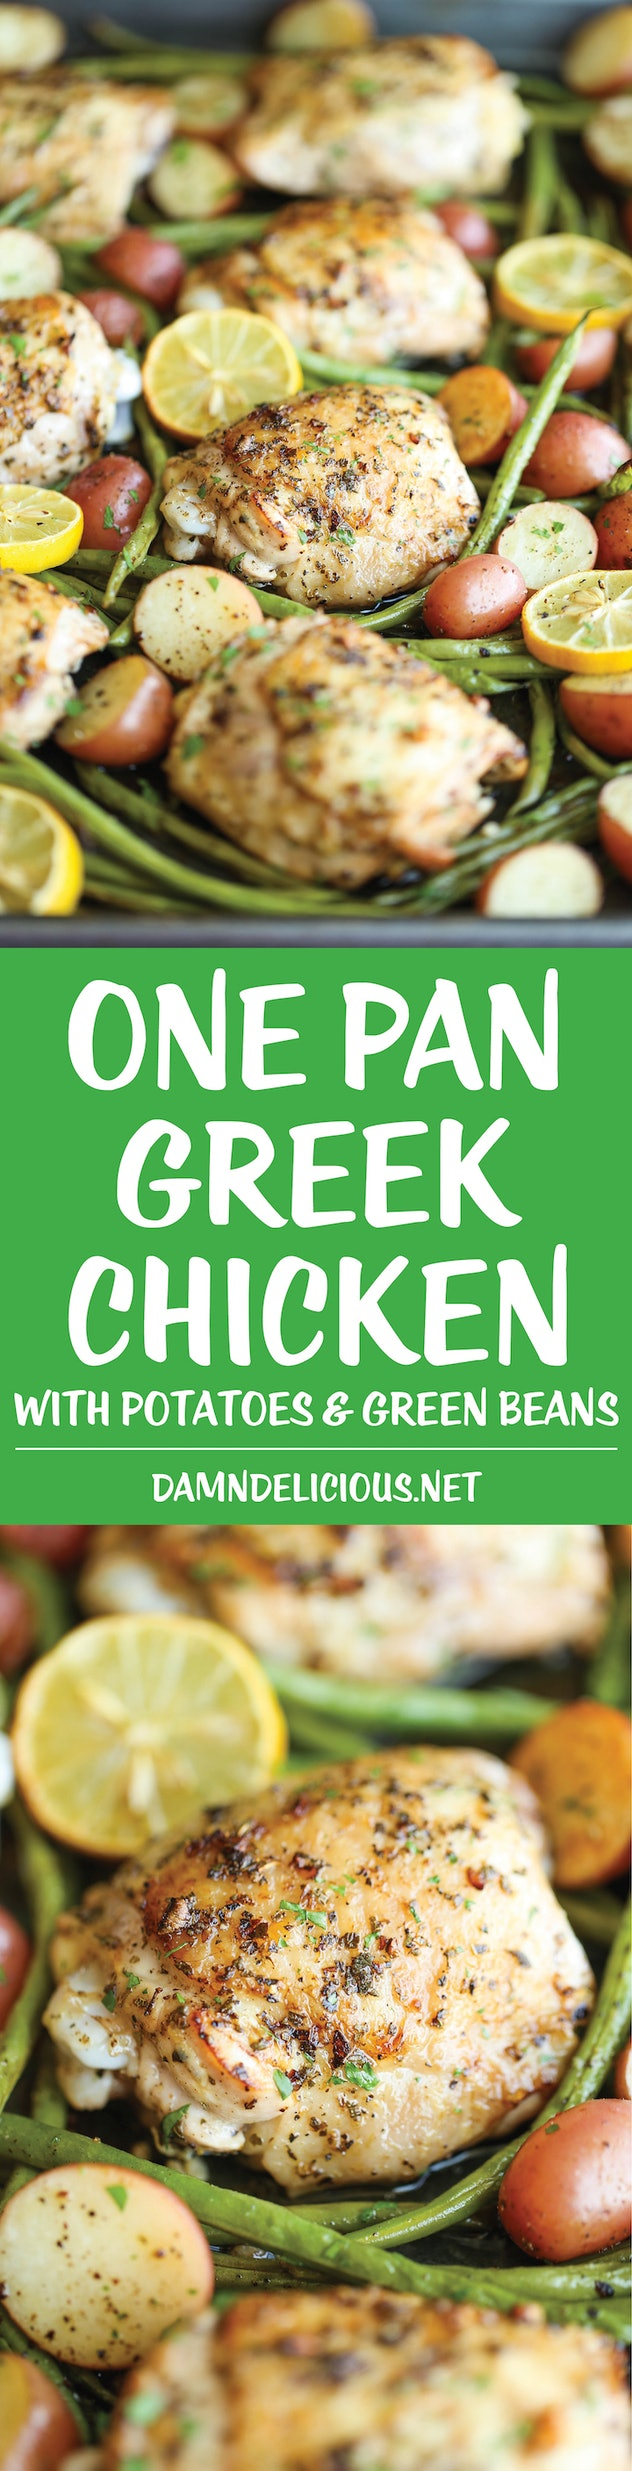 sheet pan recipes with chicken thighs, one pan greek chicken with green beans and potatoes